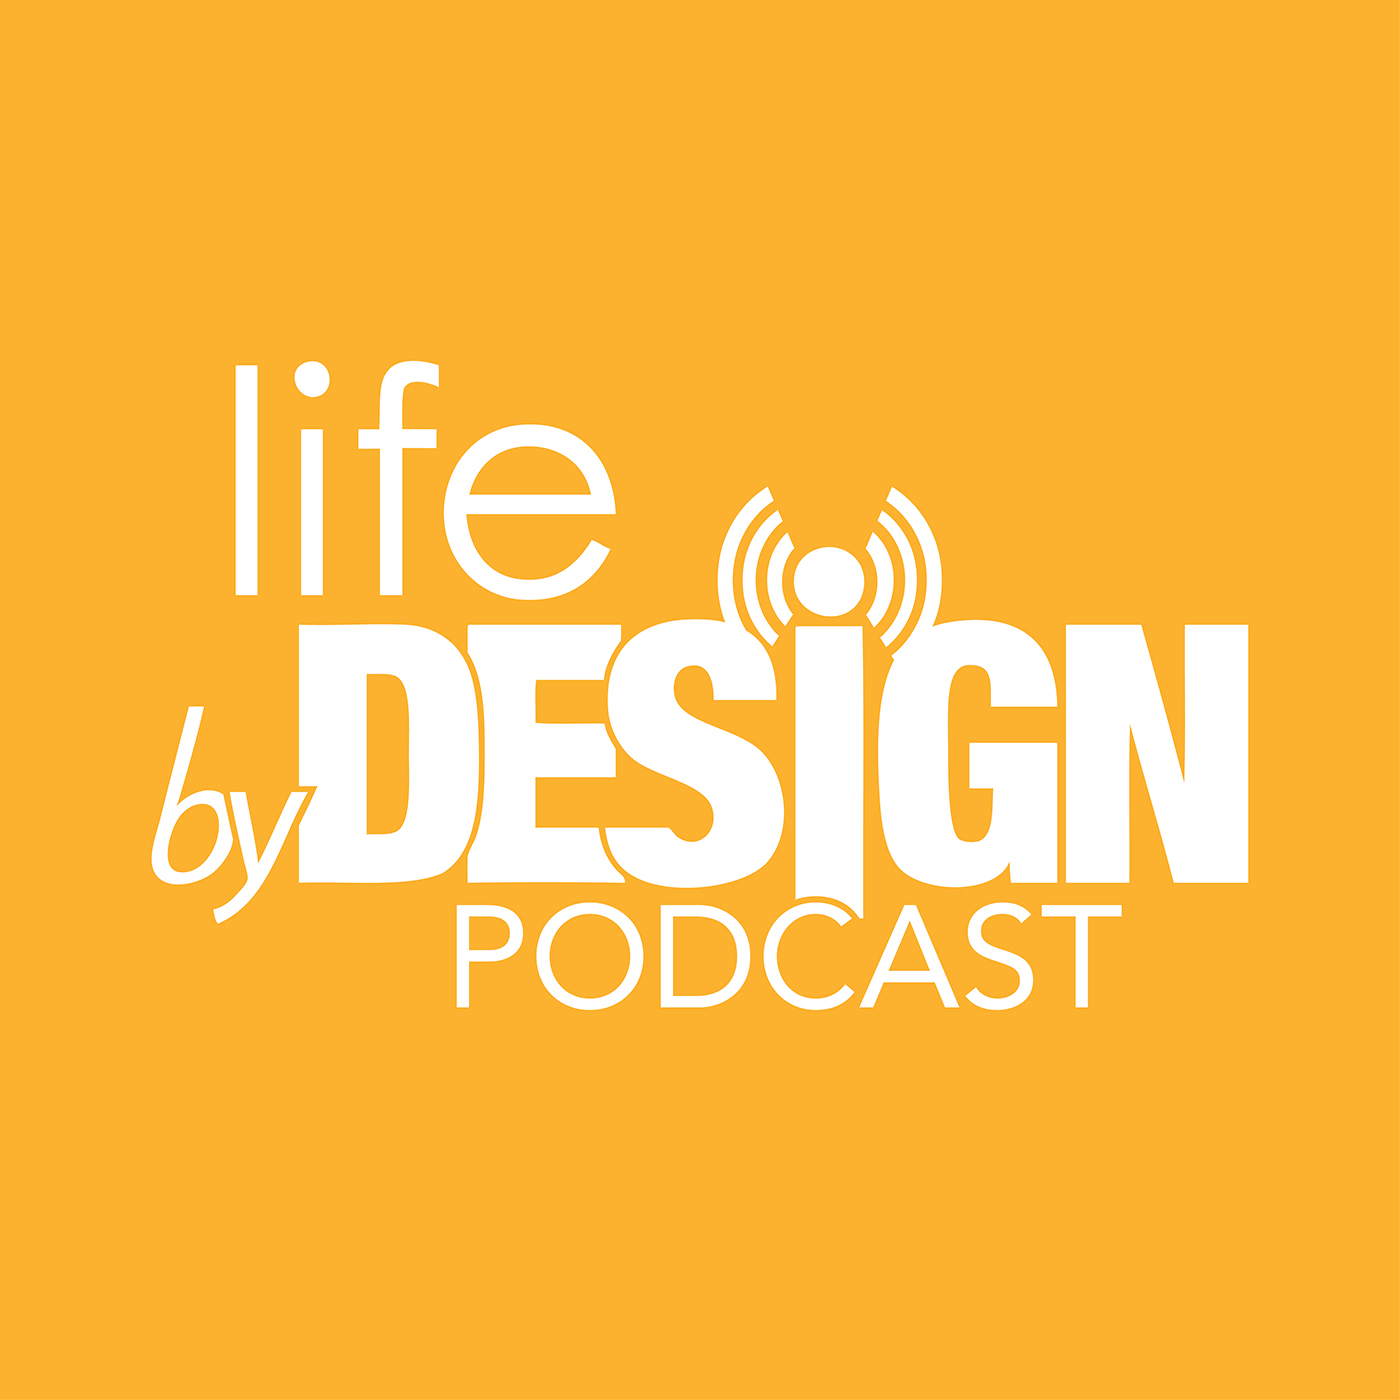 Life By Design Podcast show art